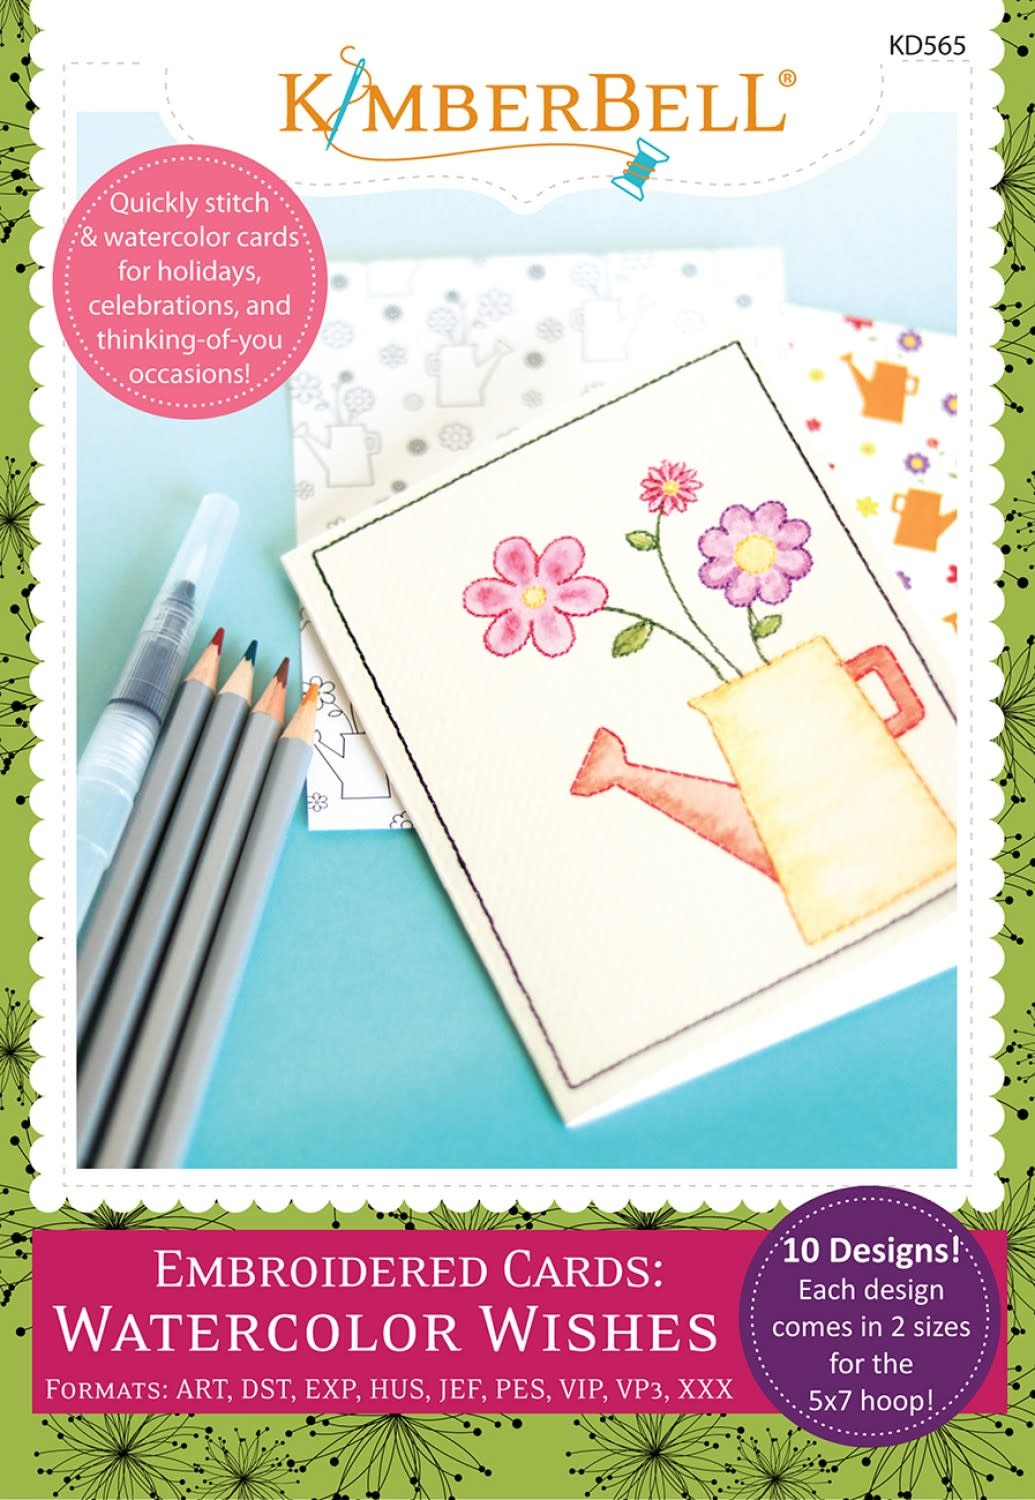 KIMBERBELL DESIGNS Embroidery Cards: Watercolor Wishes